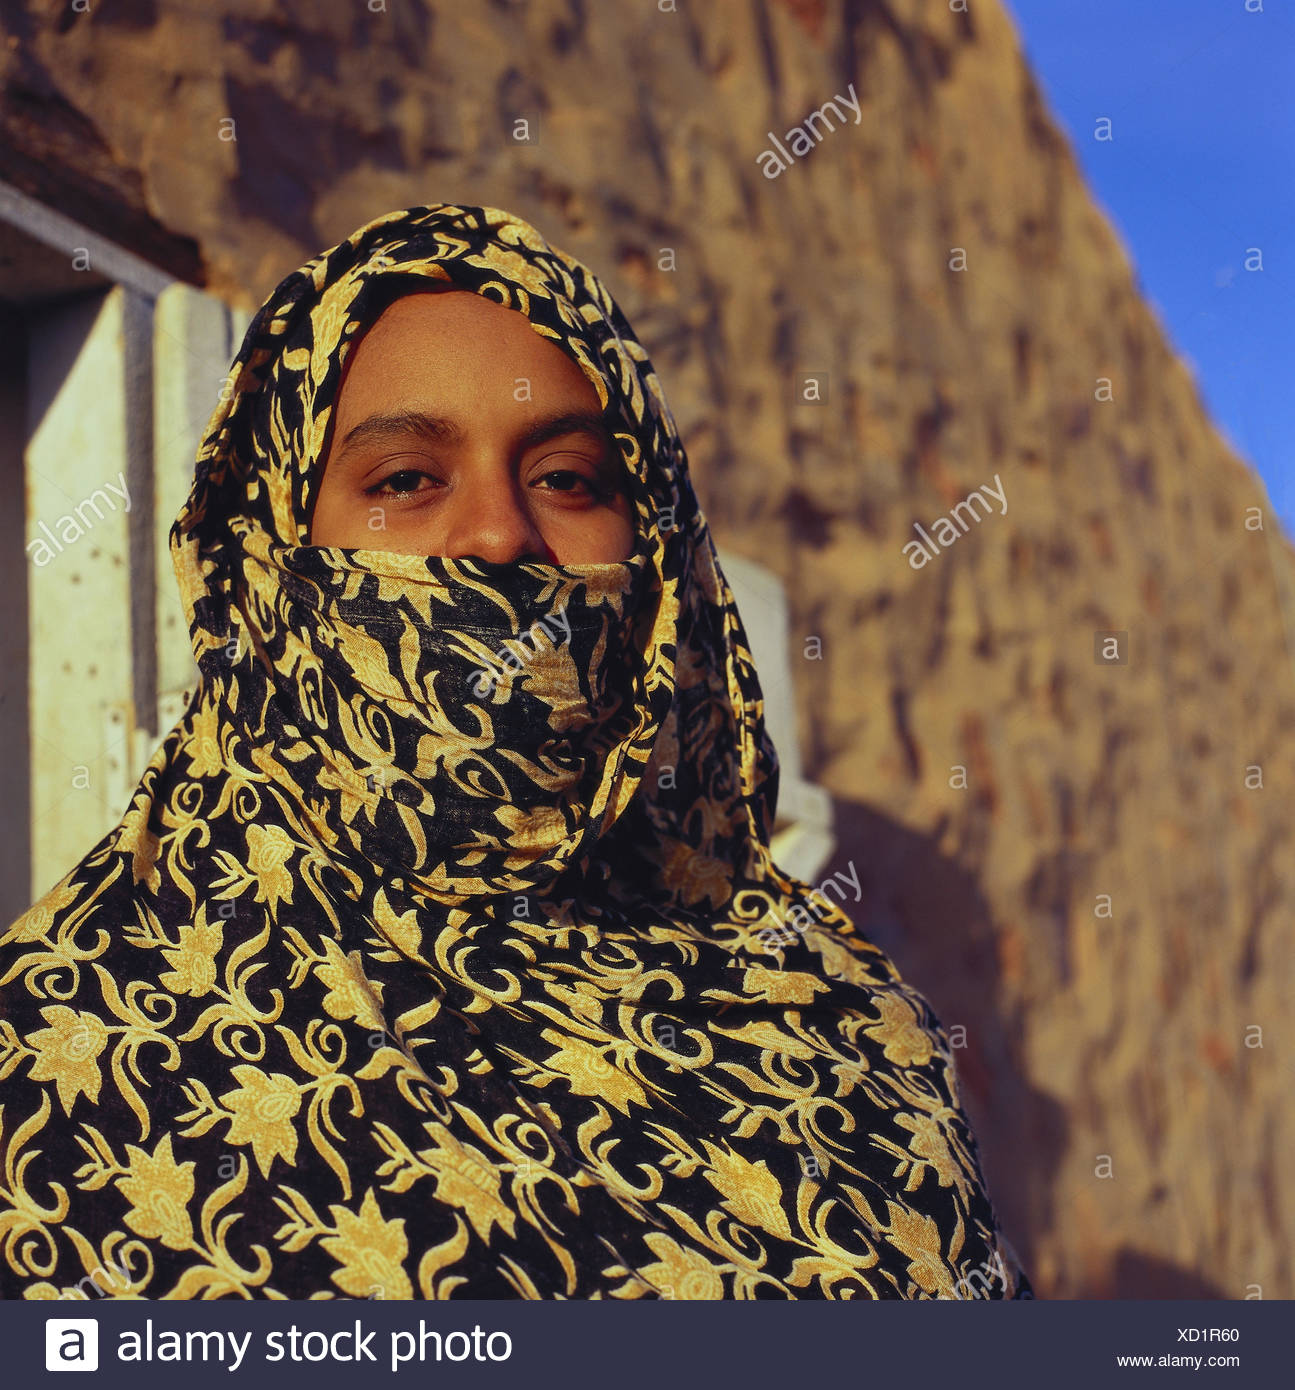 Mauritania, woman, young, veils, Africa, West, Africa, person, girl, Moor, Mauritanian, headscarf, veil, faith, culture, Islamic, outside, - Stock Image